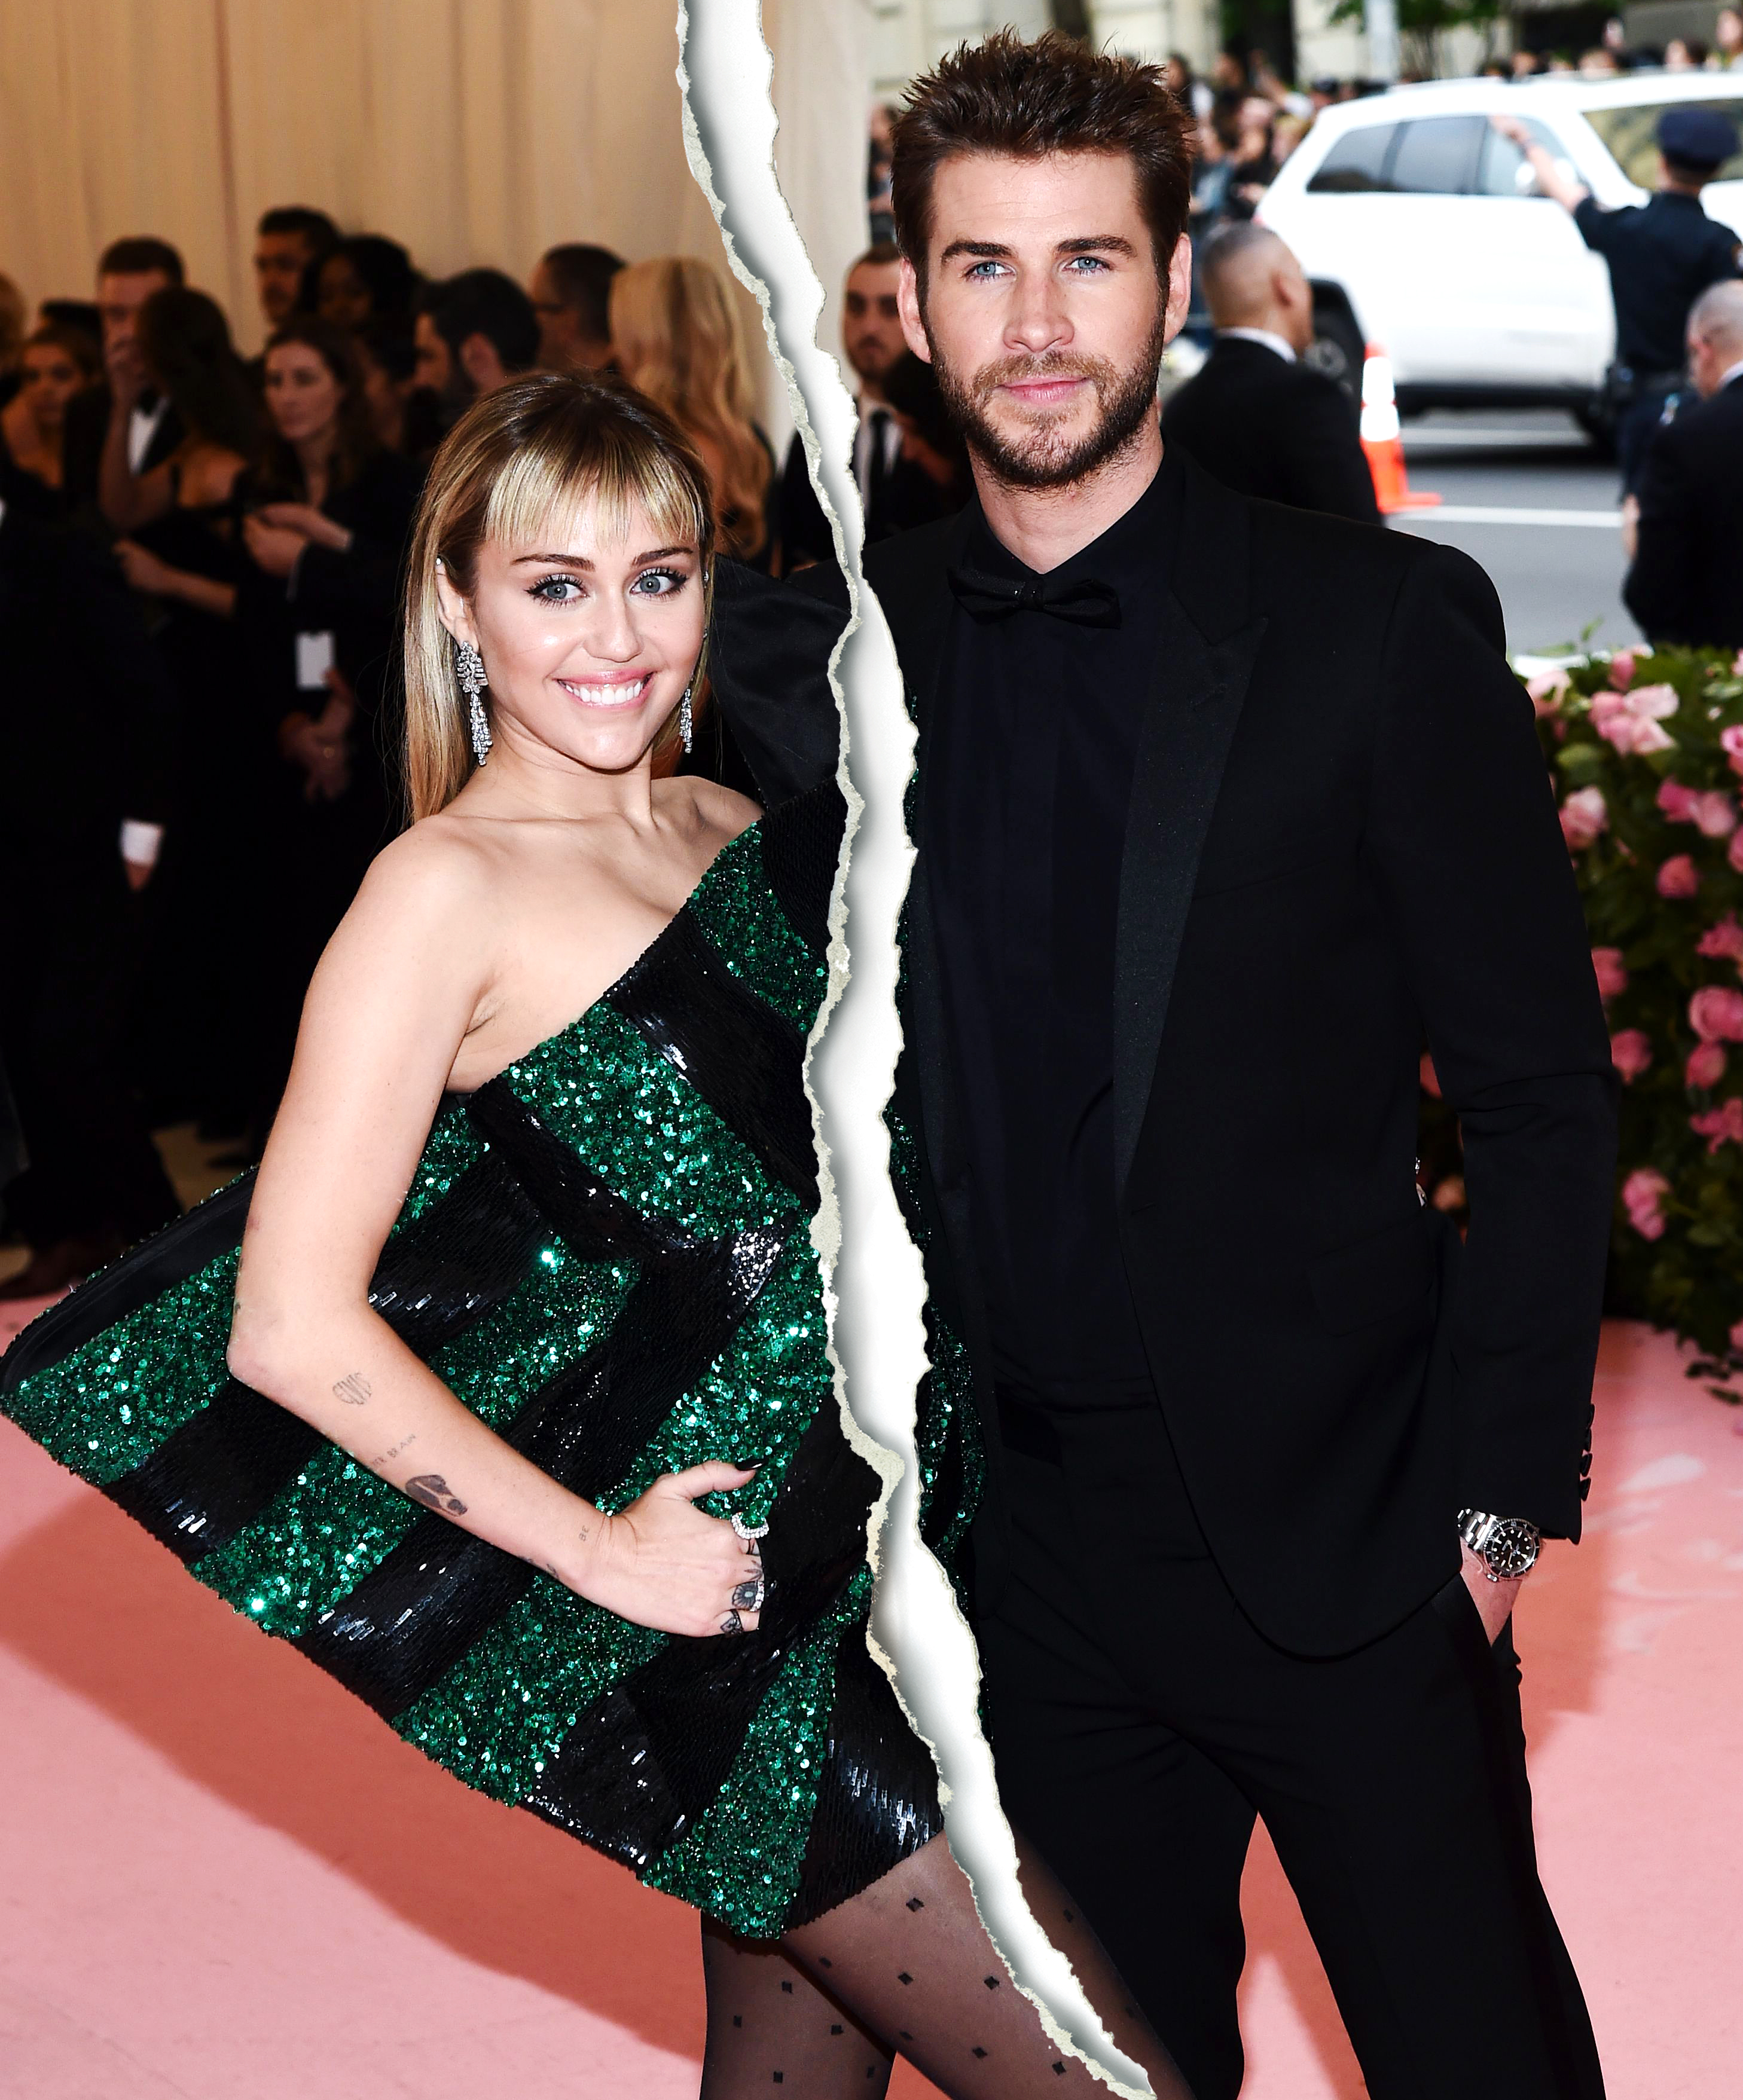 Miley Cyrus, Liam Hemsworth Split After Less Than 8 Months of Marriage